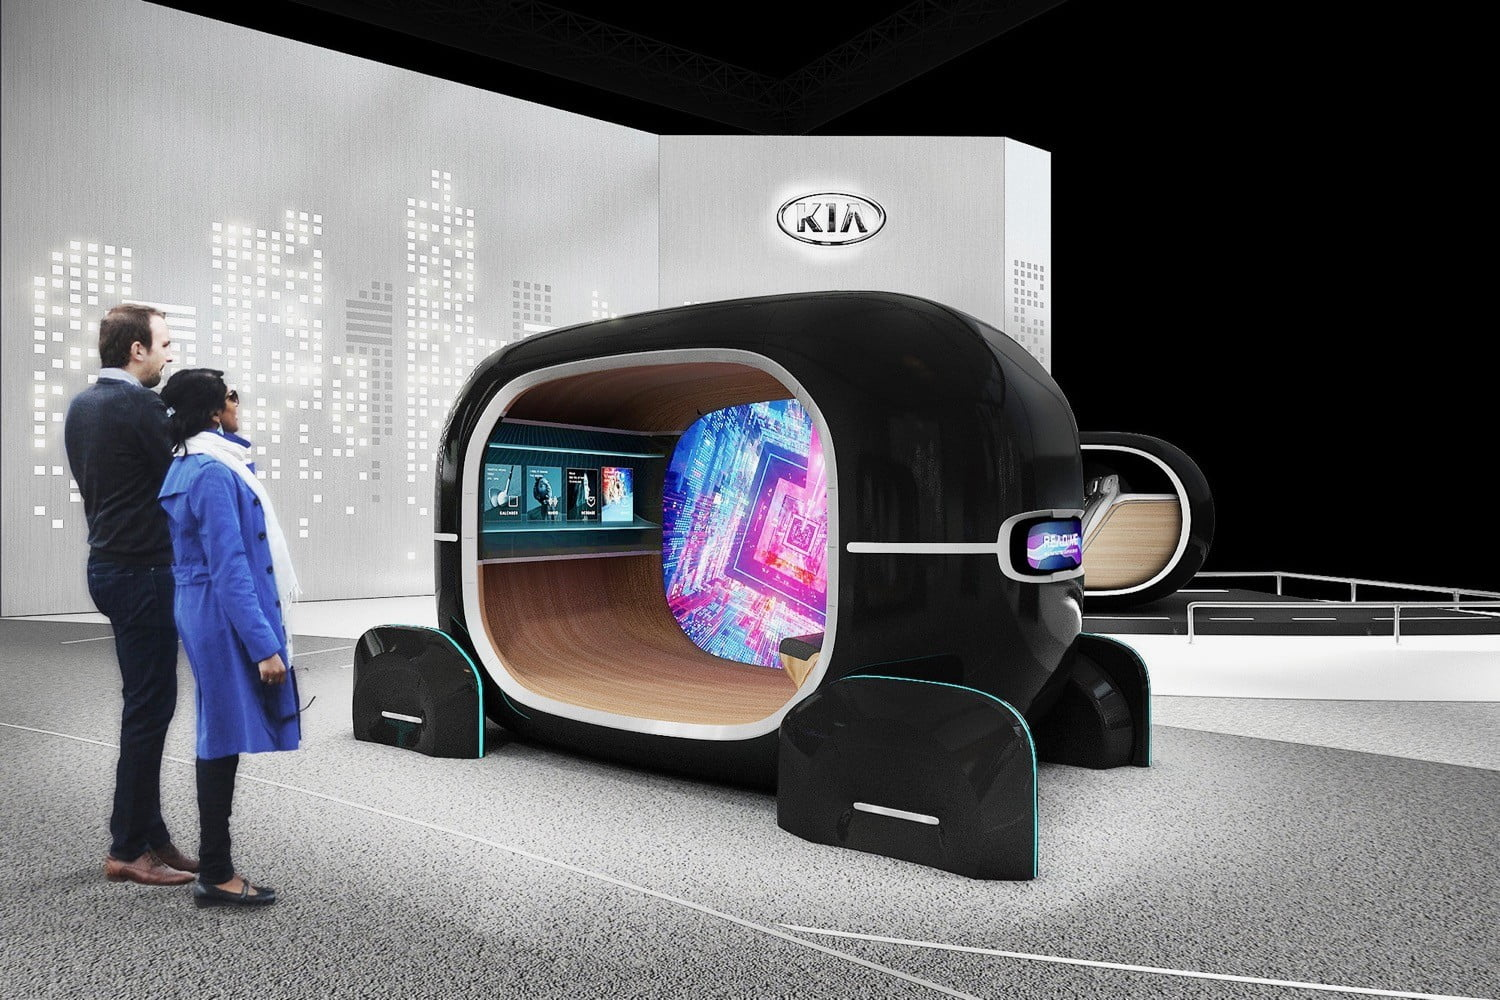 Kia To Demonstrate Emotion Recognition A I Tech At Ces 2019 Digital Trends